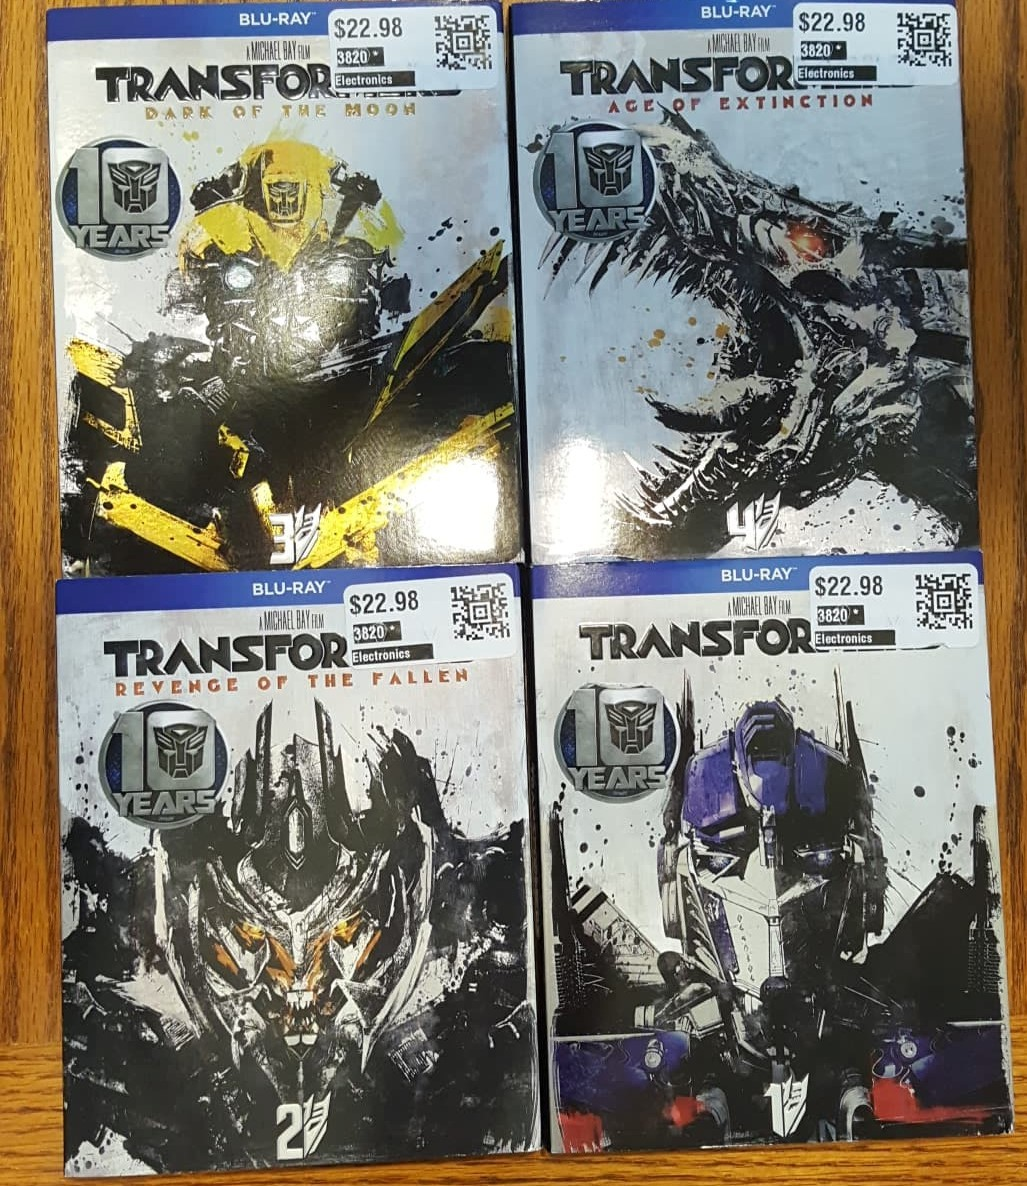 Transformers 1 - 4 10th anniversary Blu-ray lot